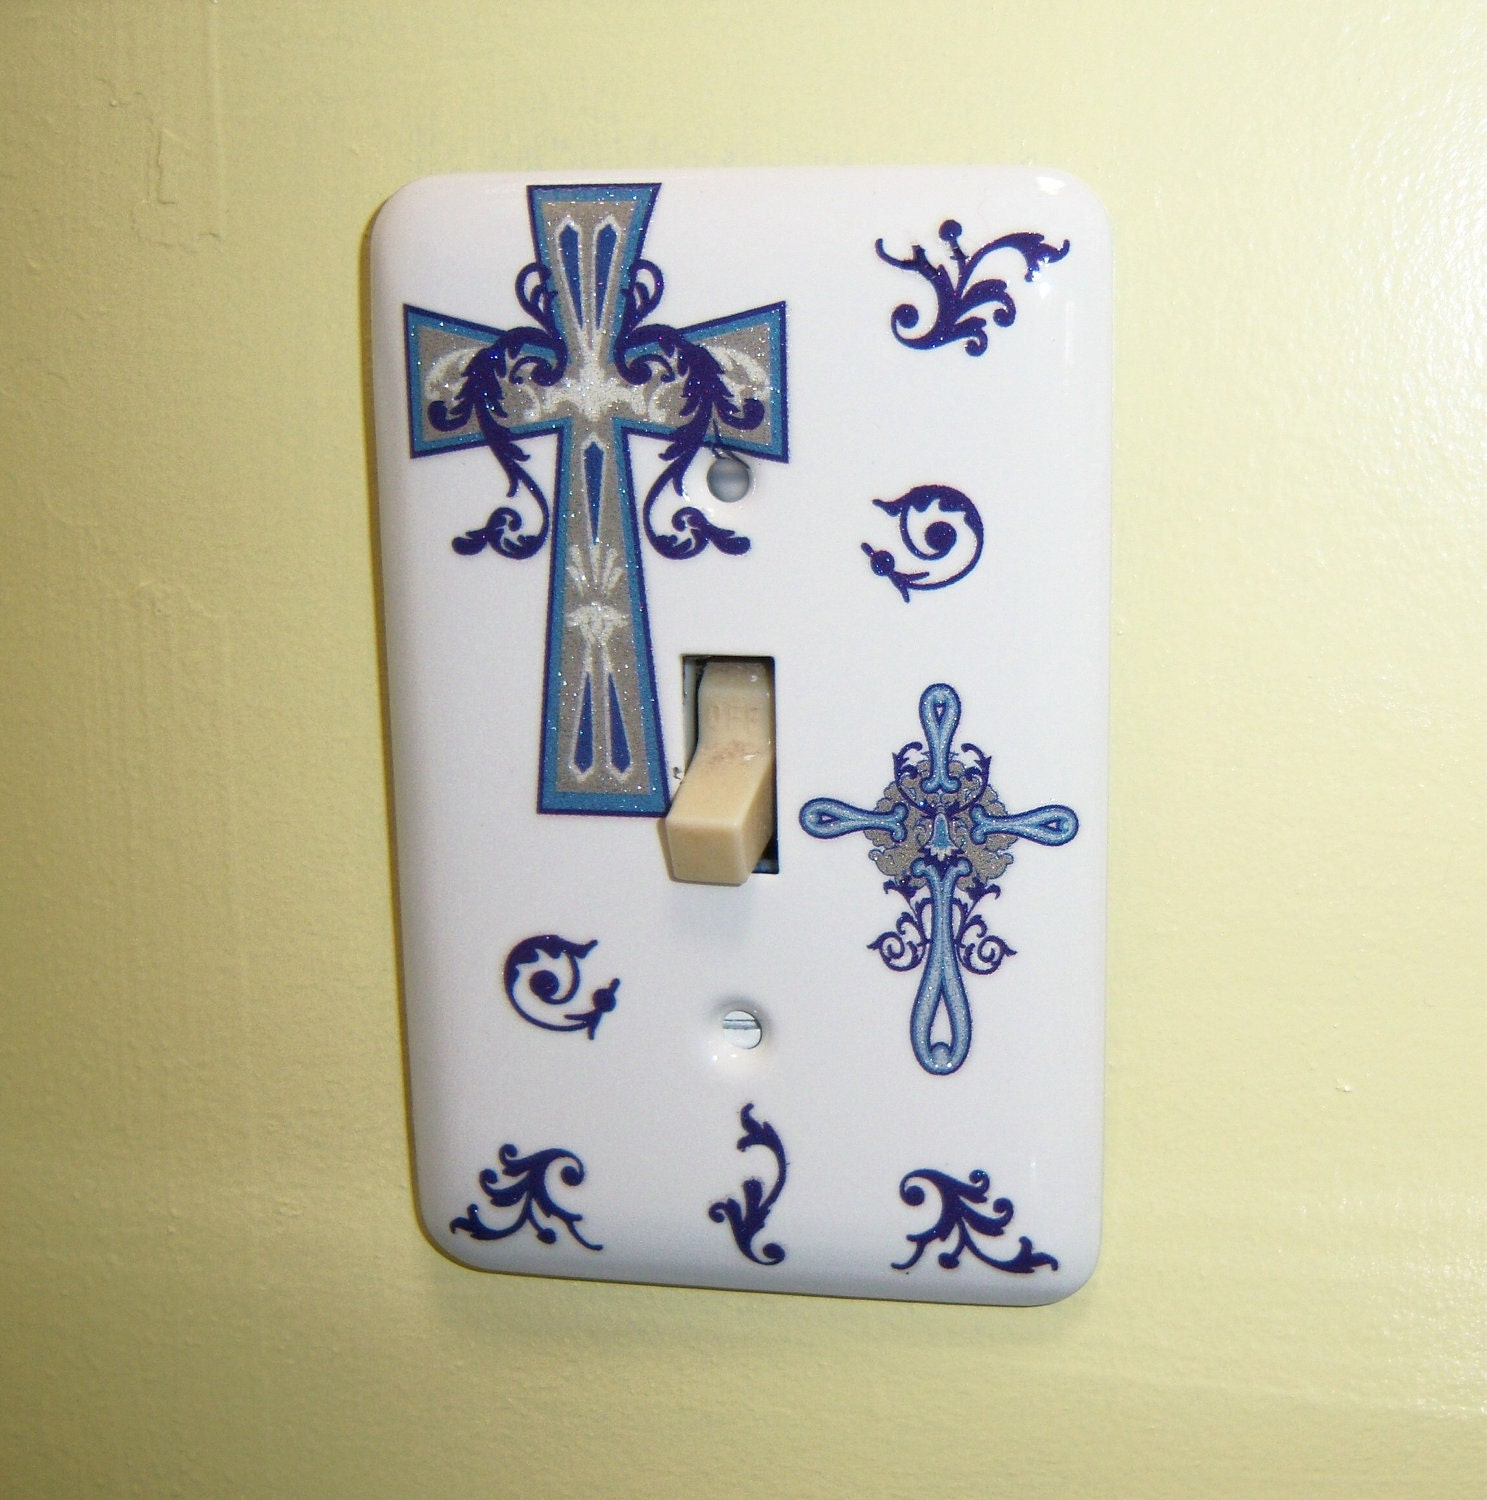 Blue Crosses steel single light switch cover - glittery